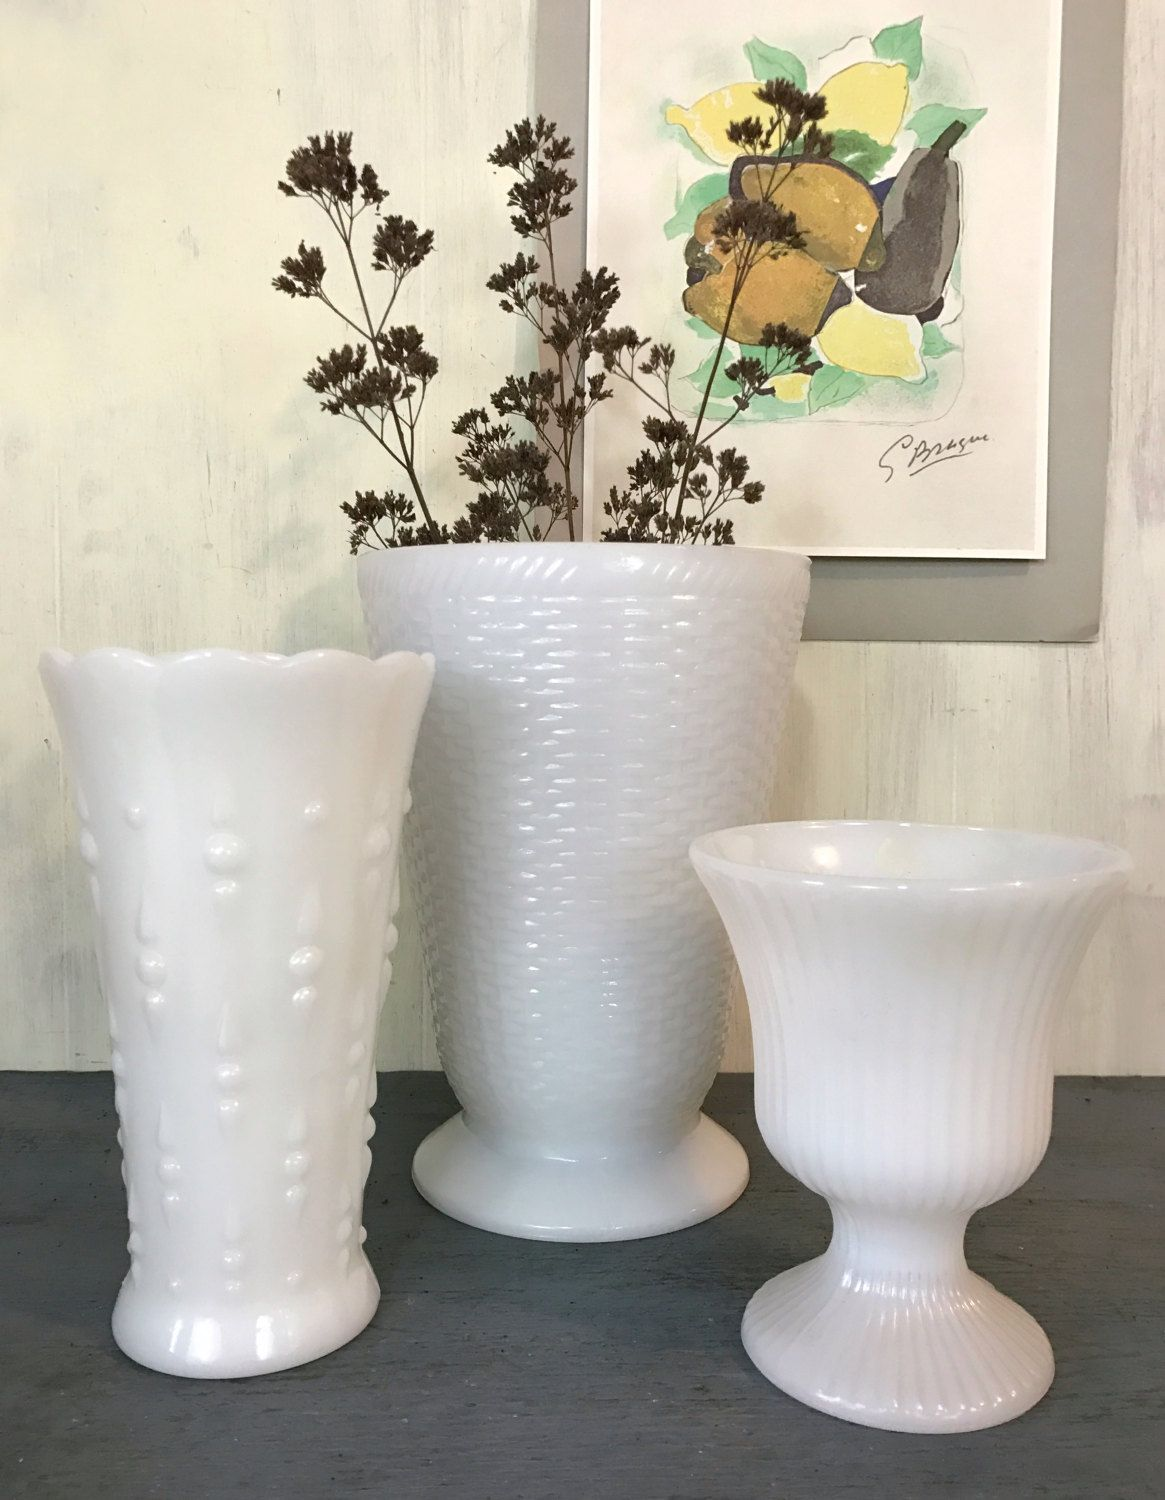 Vintage milk glass vases large white vase hobnail basketweave vintage milk glass vases large white vase hobnail basketweave glass vase cottage style reviewsmspy